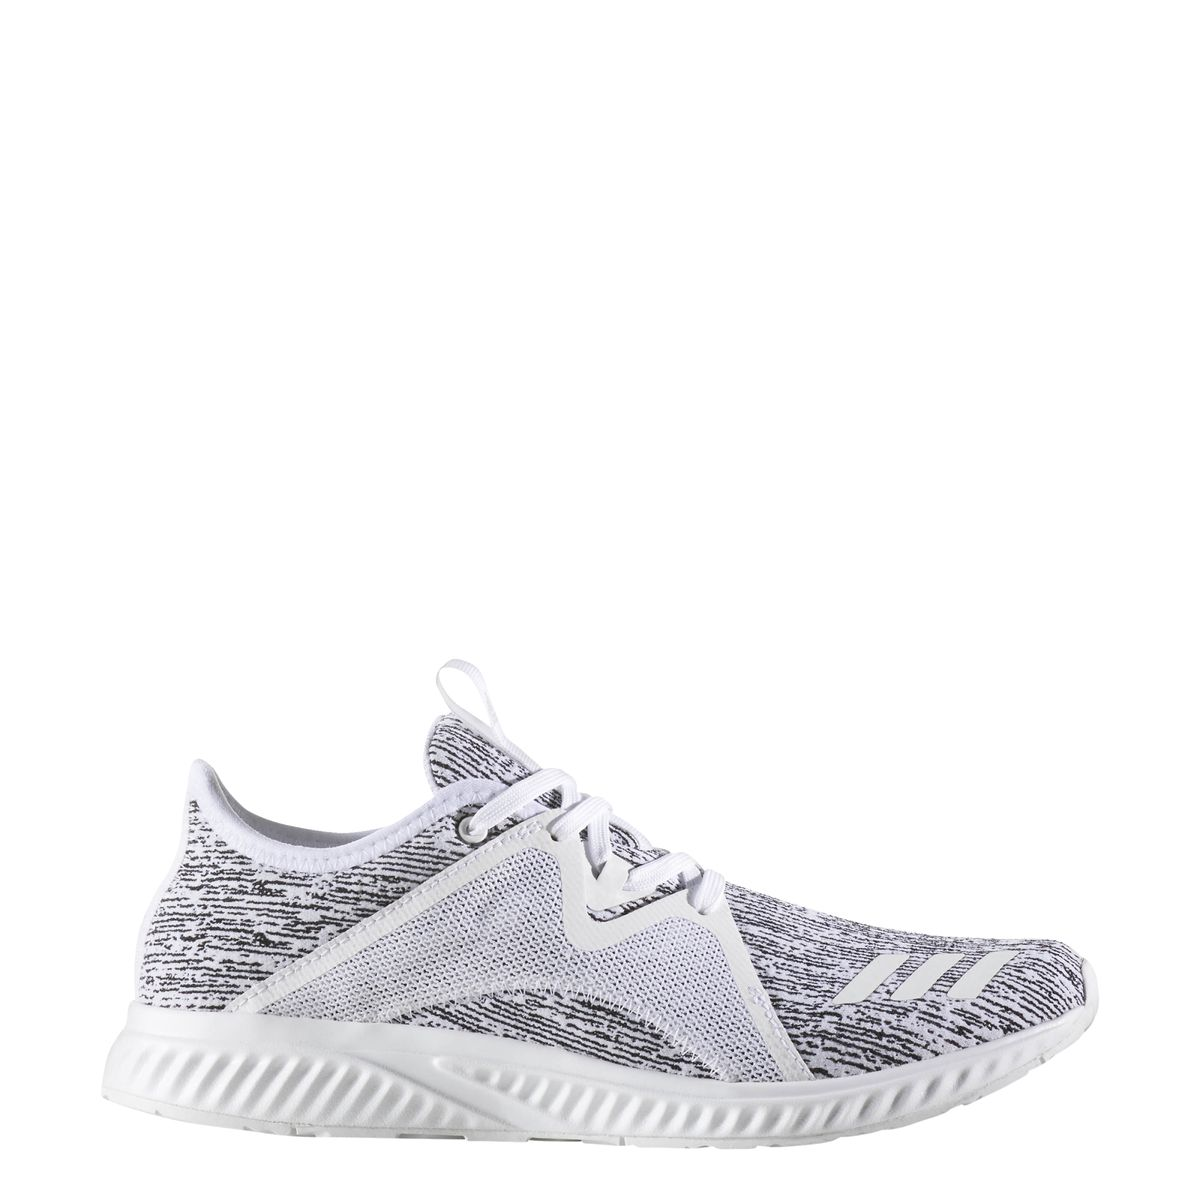 Women's adidas Edge Lux 2.0 Running Shoes